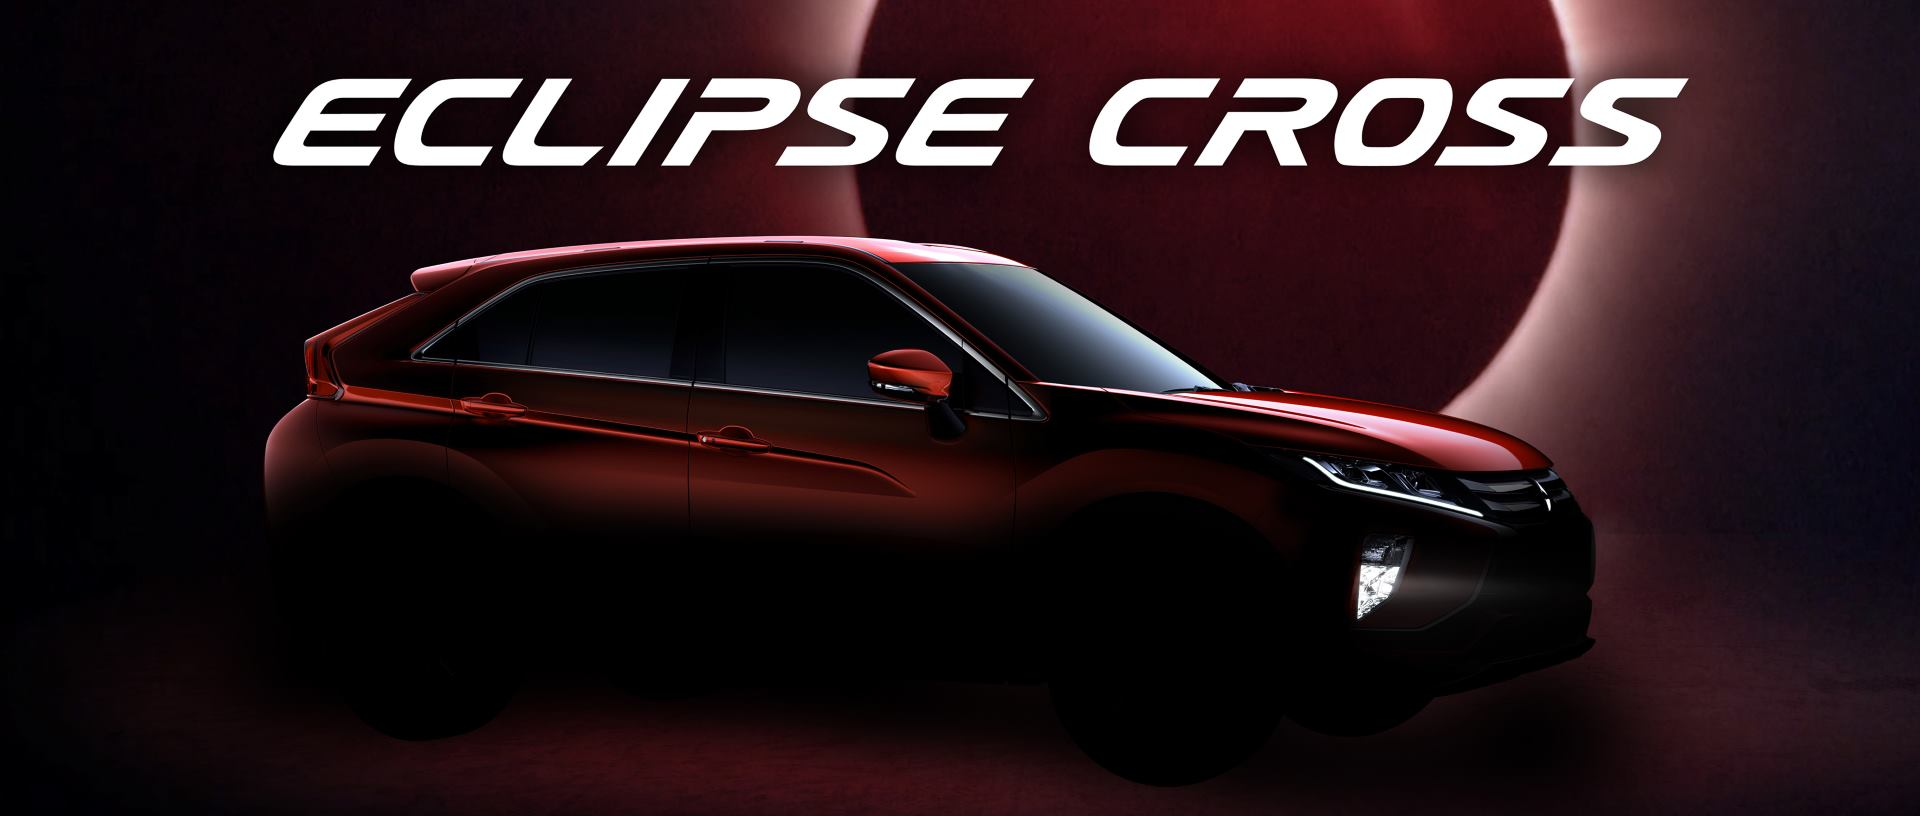 VIDEO: Mitsubishi najavljuje novi kompaktni SUV – Eclipse Cross